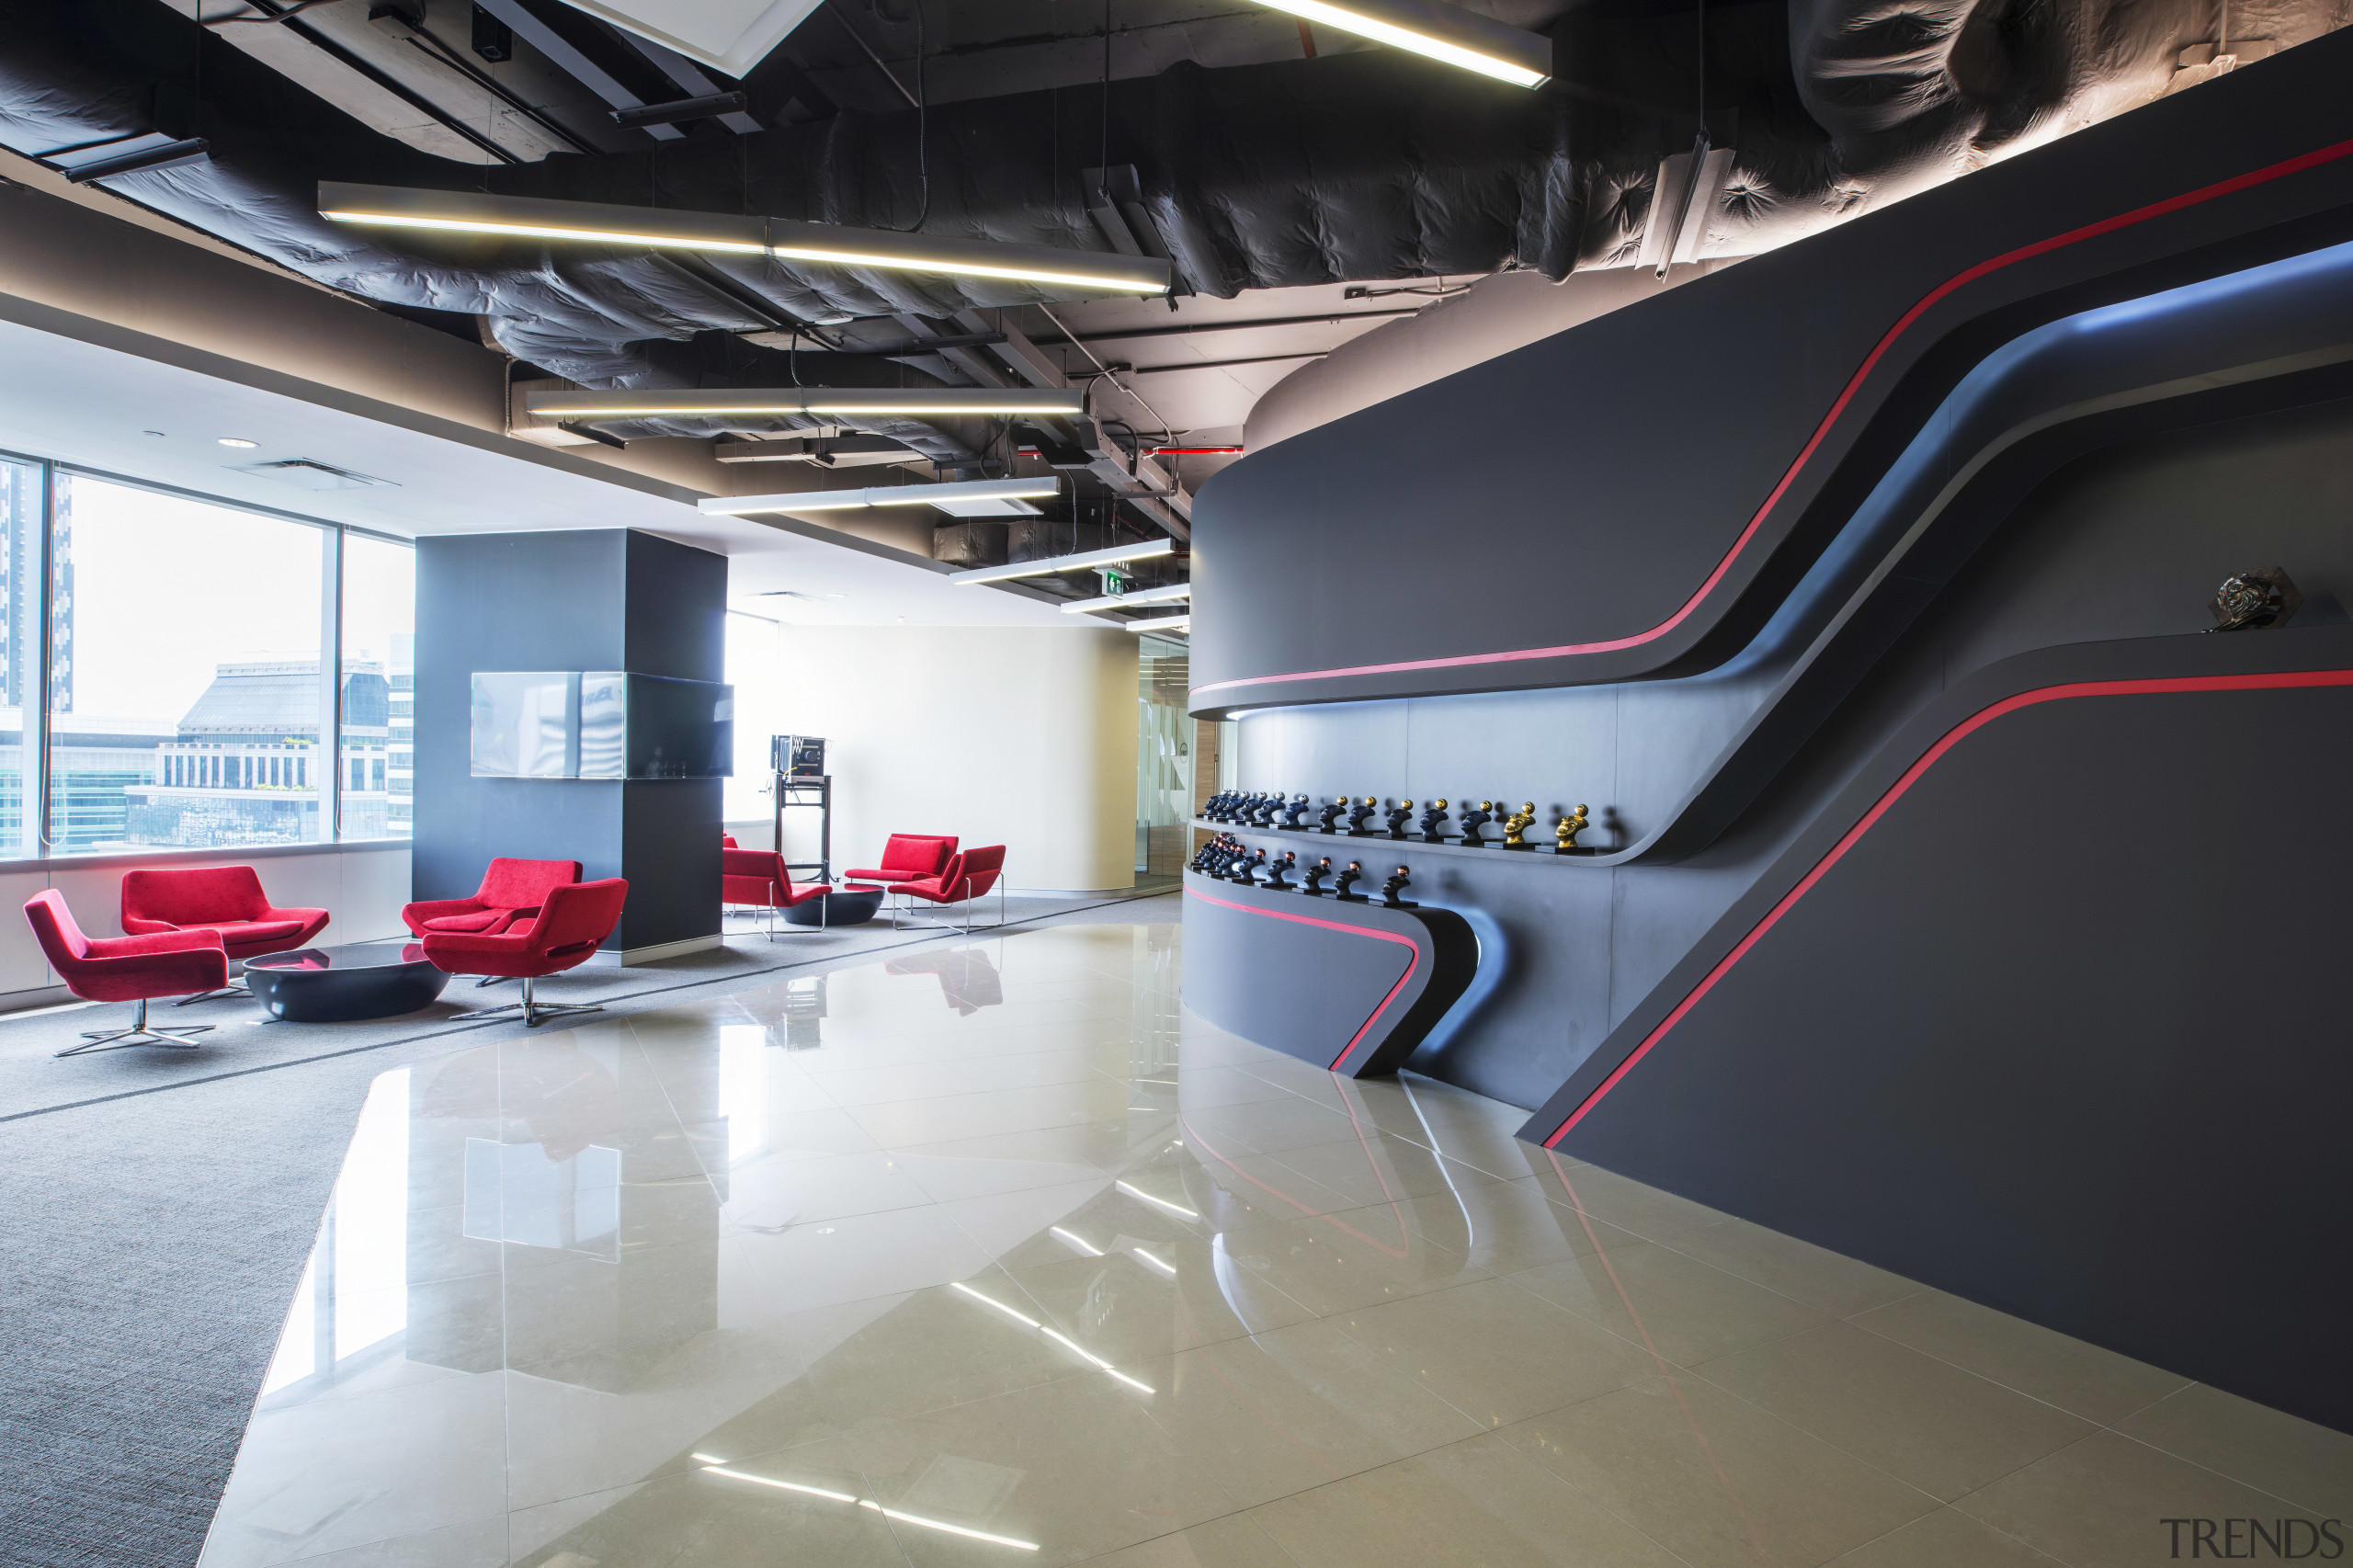 This curved wall in the reception area of architecture, automotive design, car, floor, flooring, interior design, product design, structure, black, white